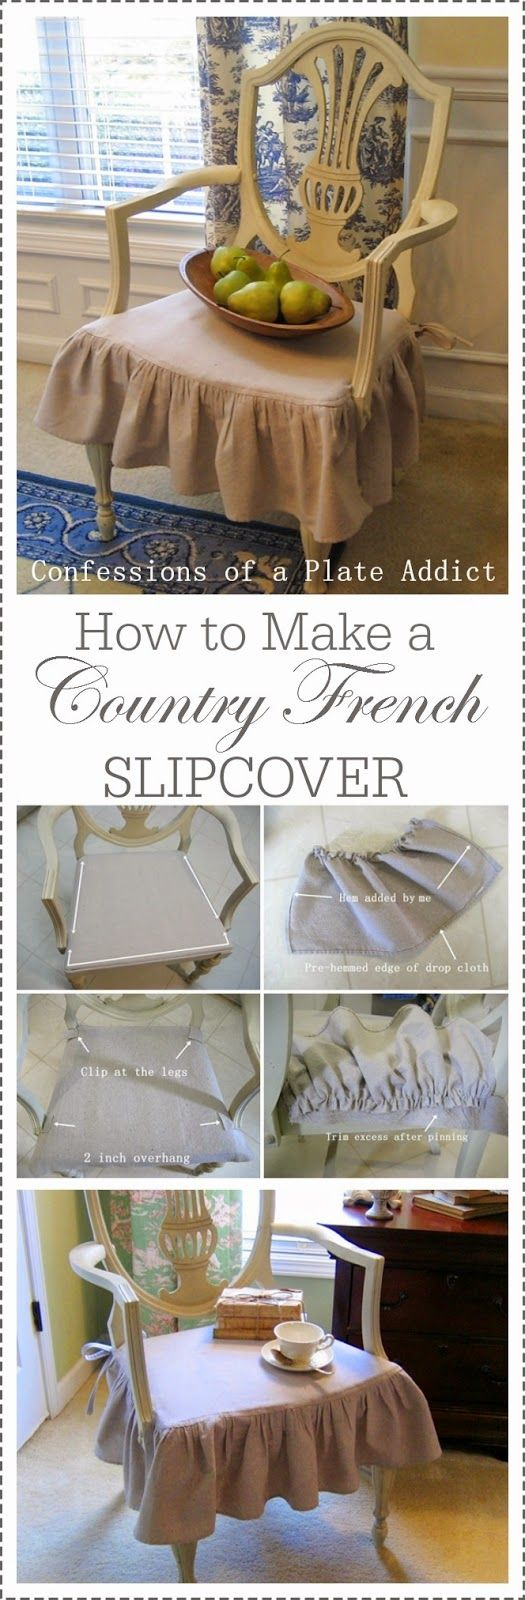 CONFESSIONS OF A PLATE ADDICT How to Make a Country French Slipcover